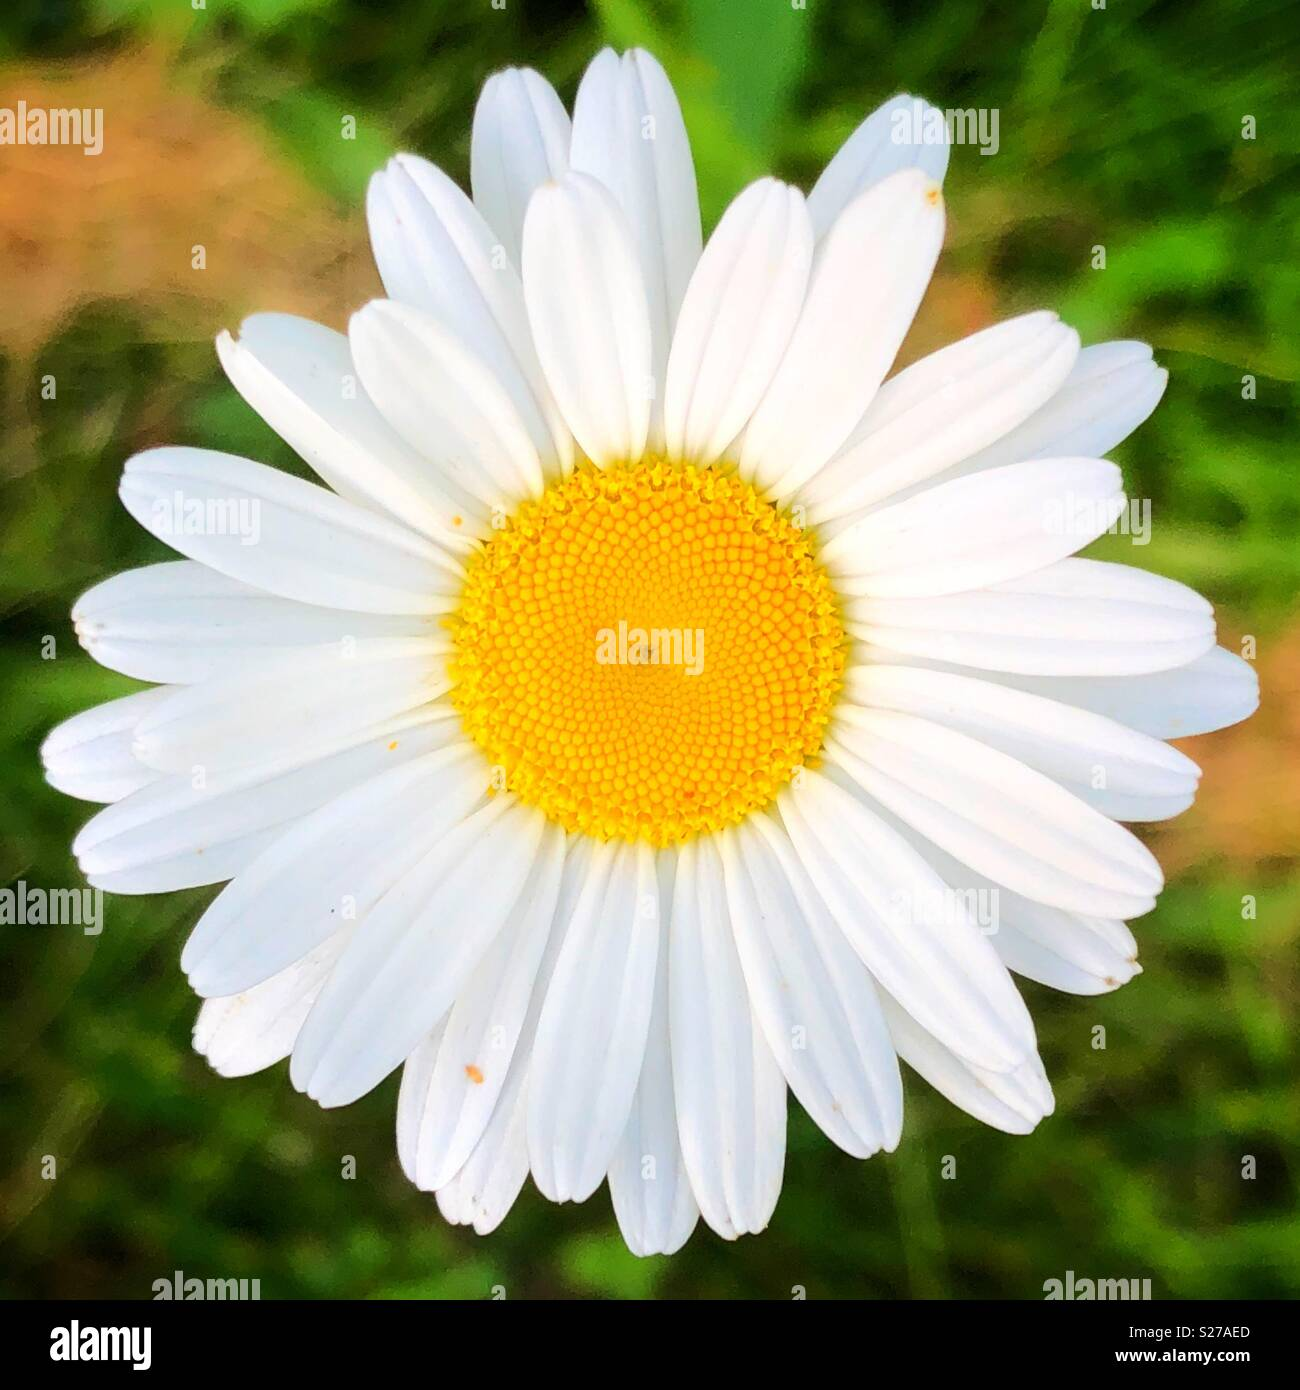 Bright centred closeup of white daisy flower - Stock Image